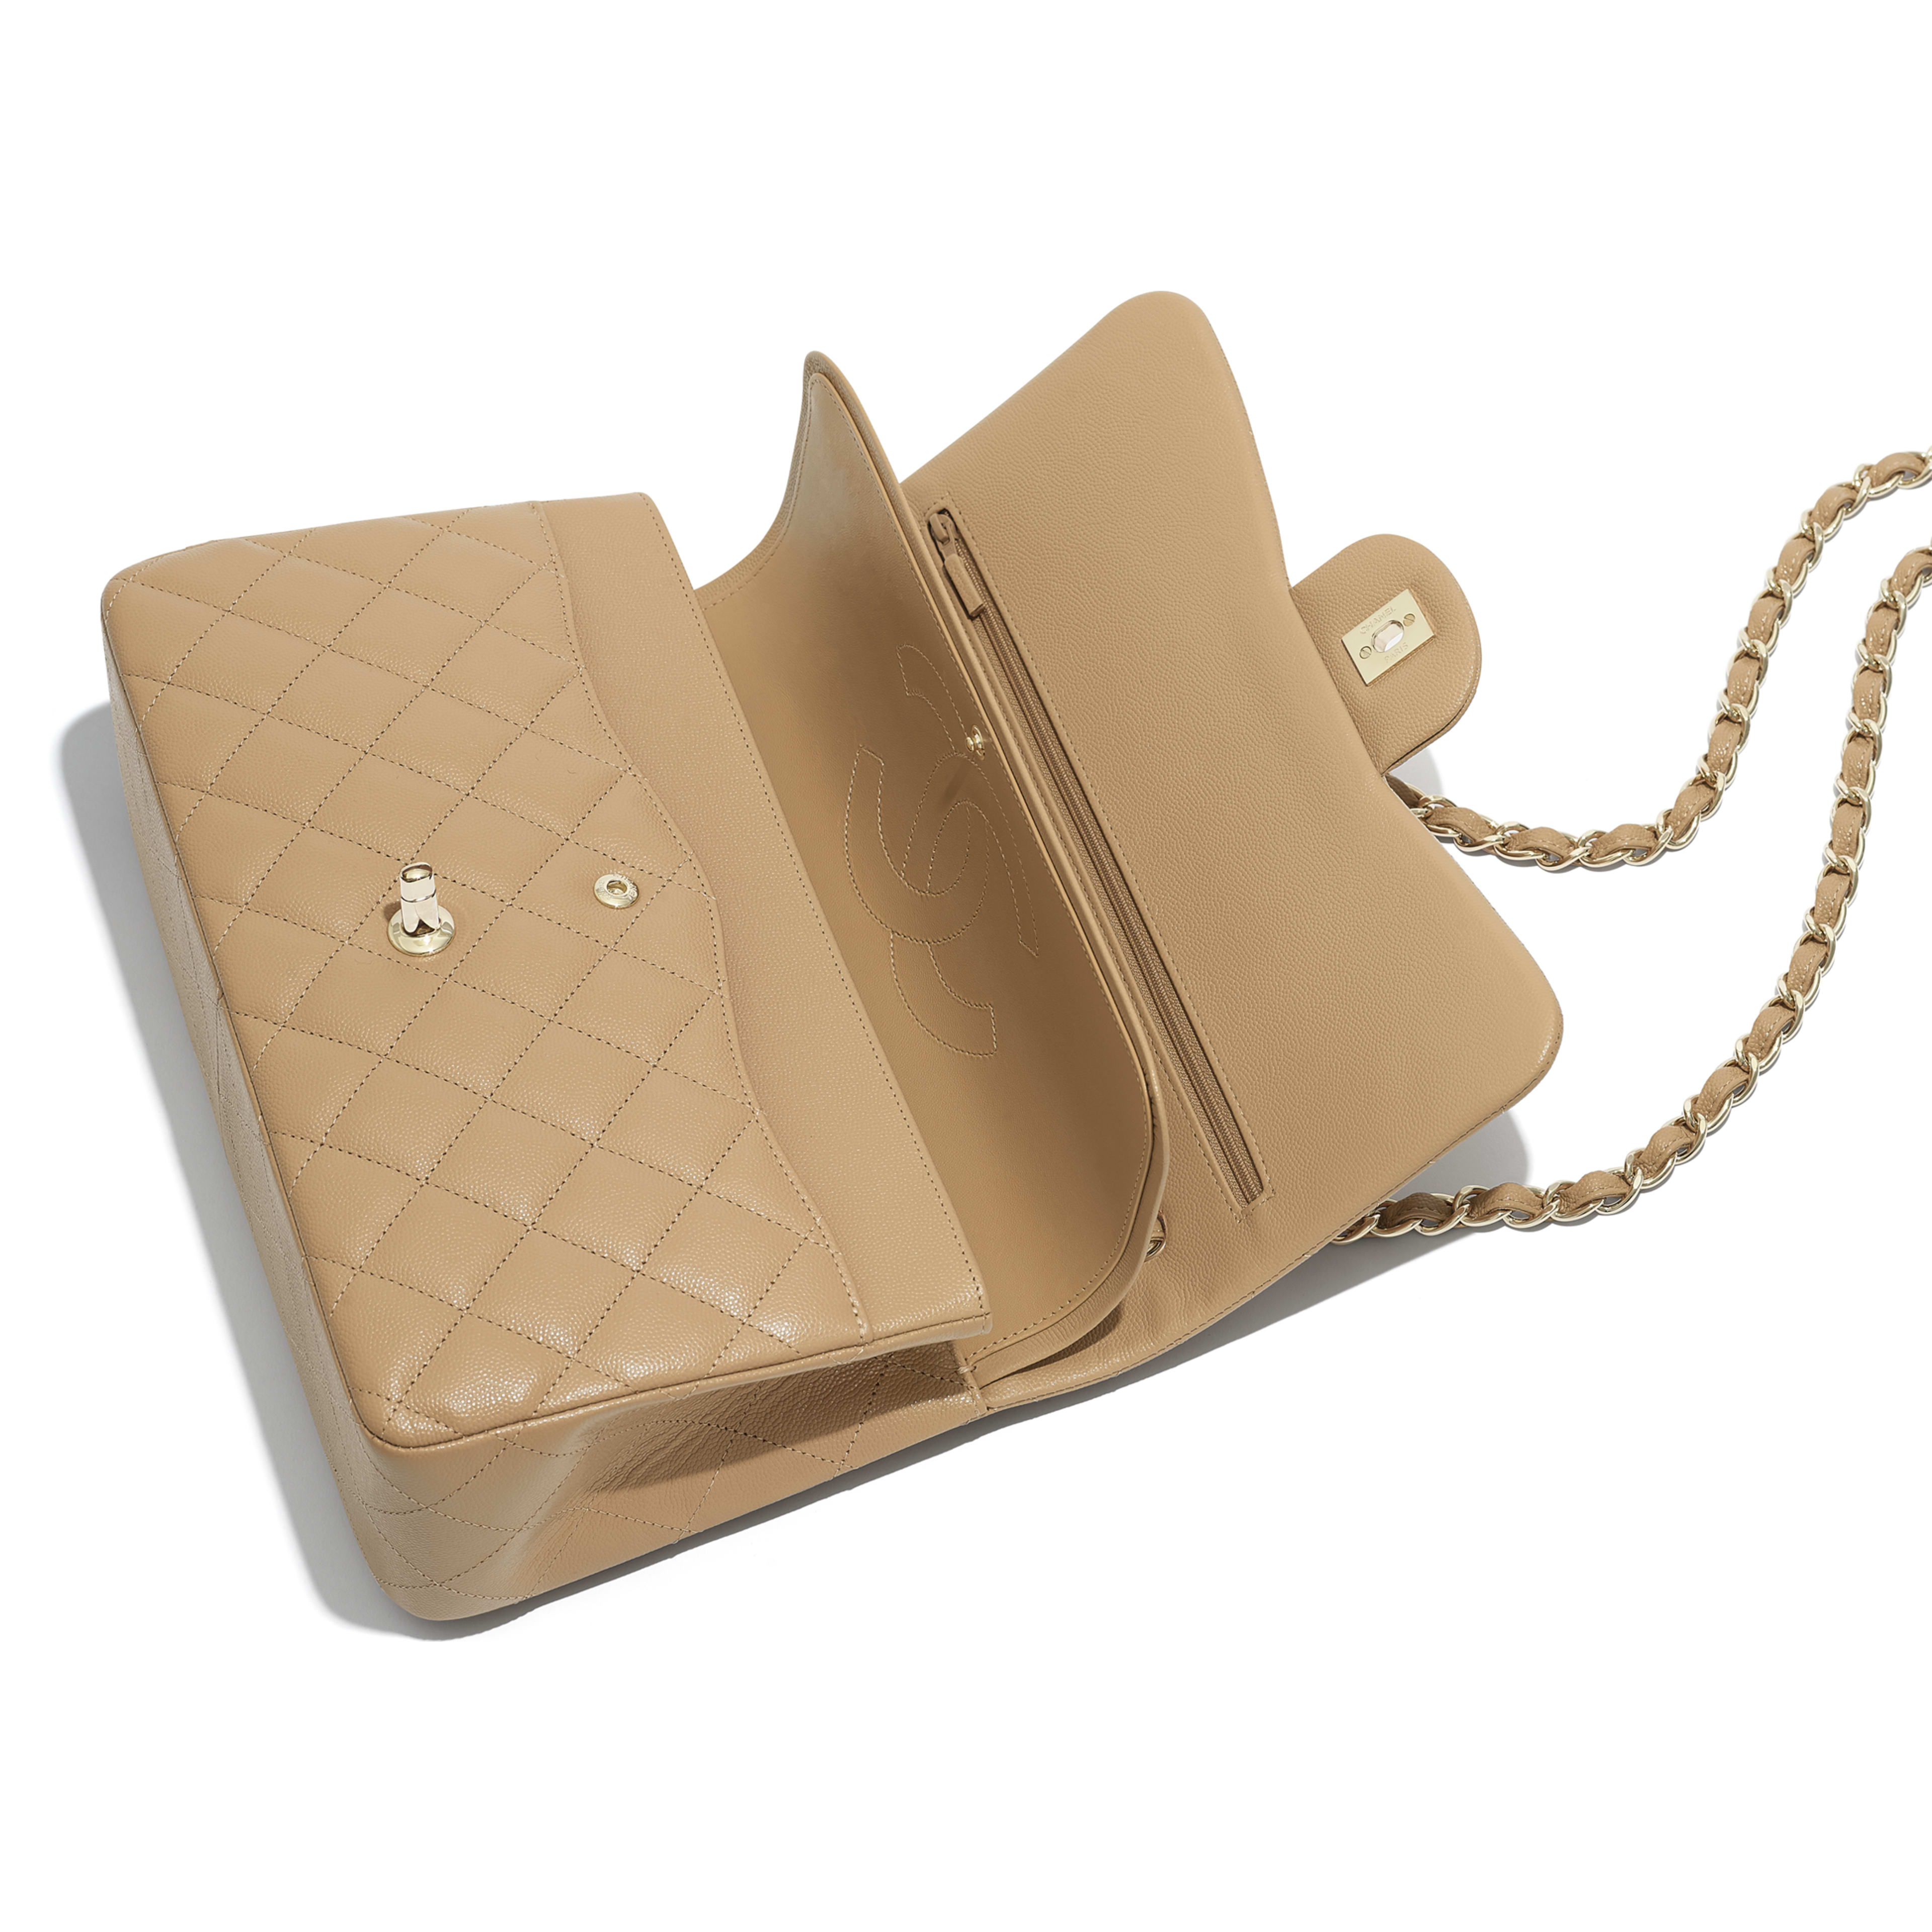 Large Classic Handbag - Beige - Grained Calfskin & Gold-Tone Metal - Other view - see full sized version